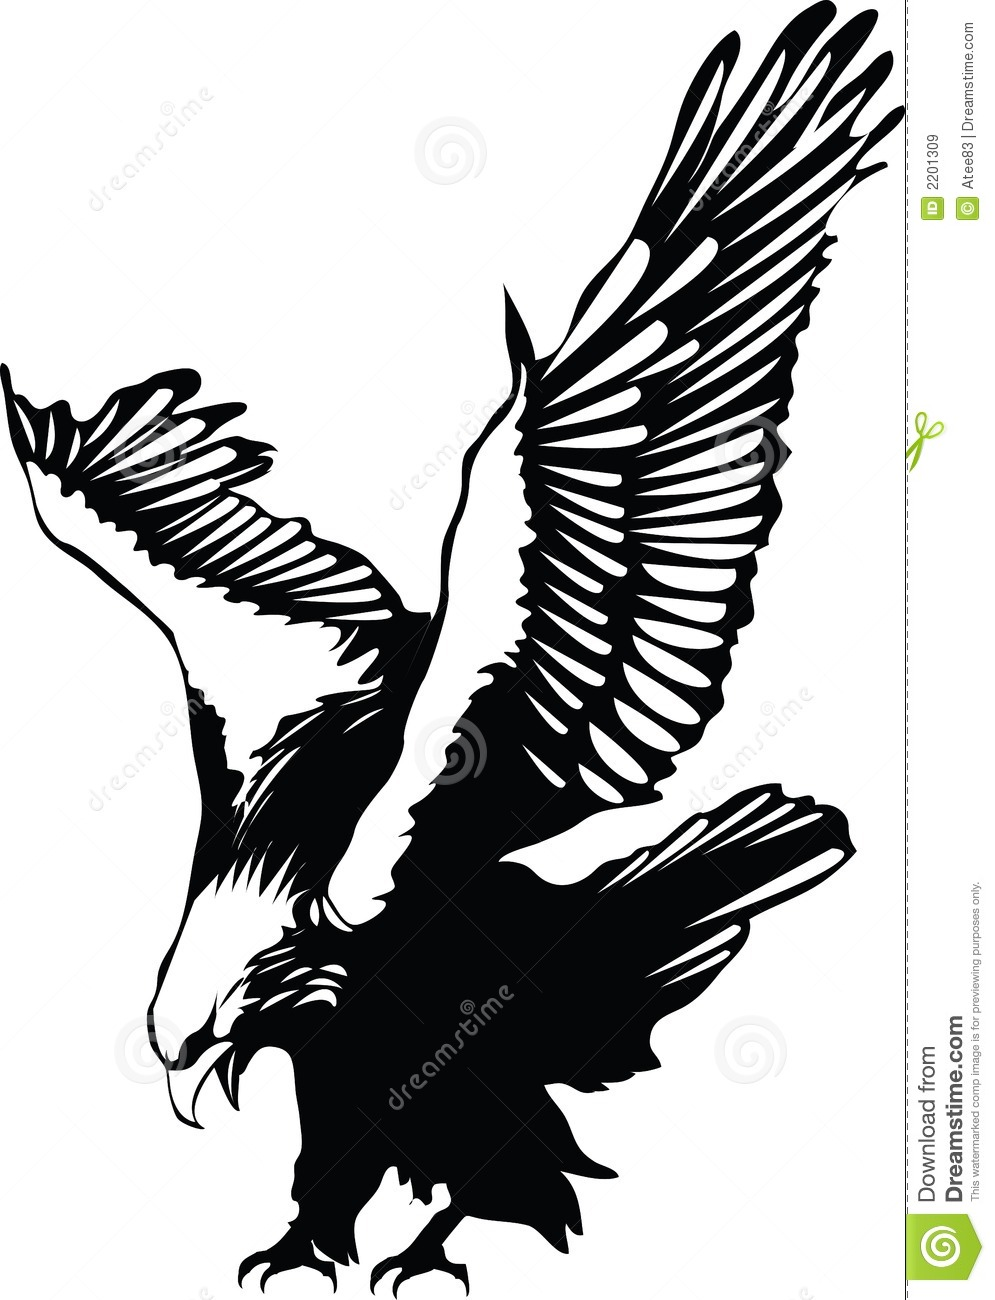 vector flying eagle stock vector image of contour abstract 2201309. Black Bedroom Furniture Sets. Home Design Ideas